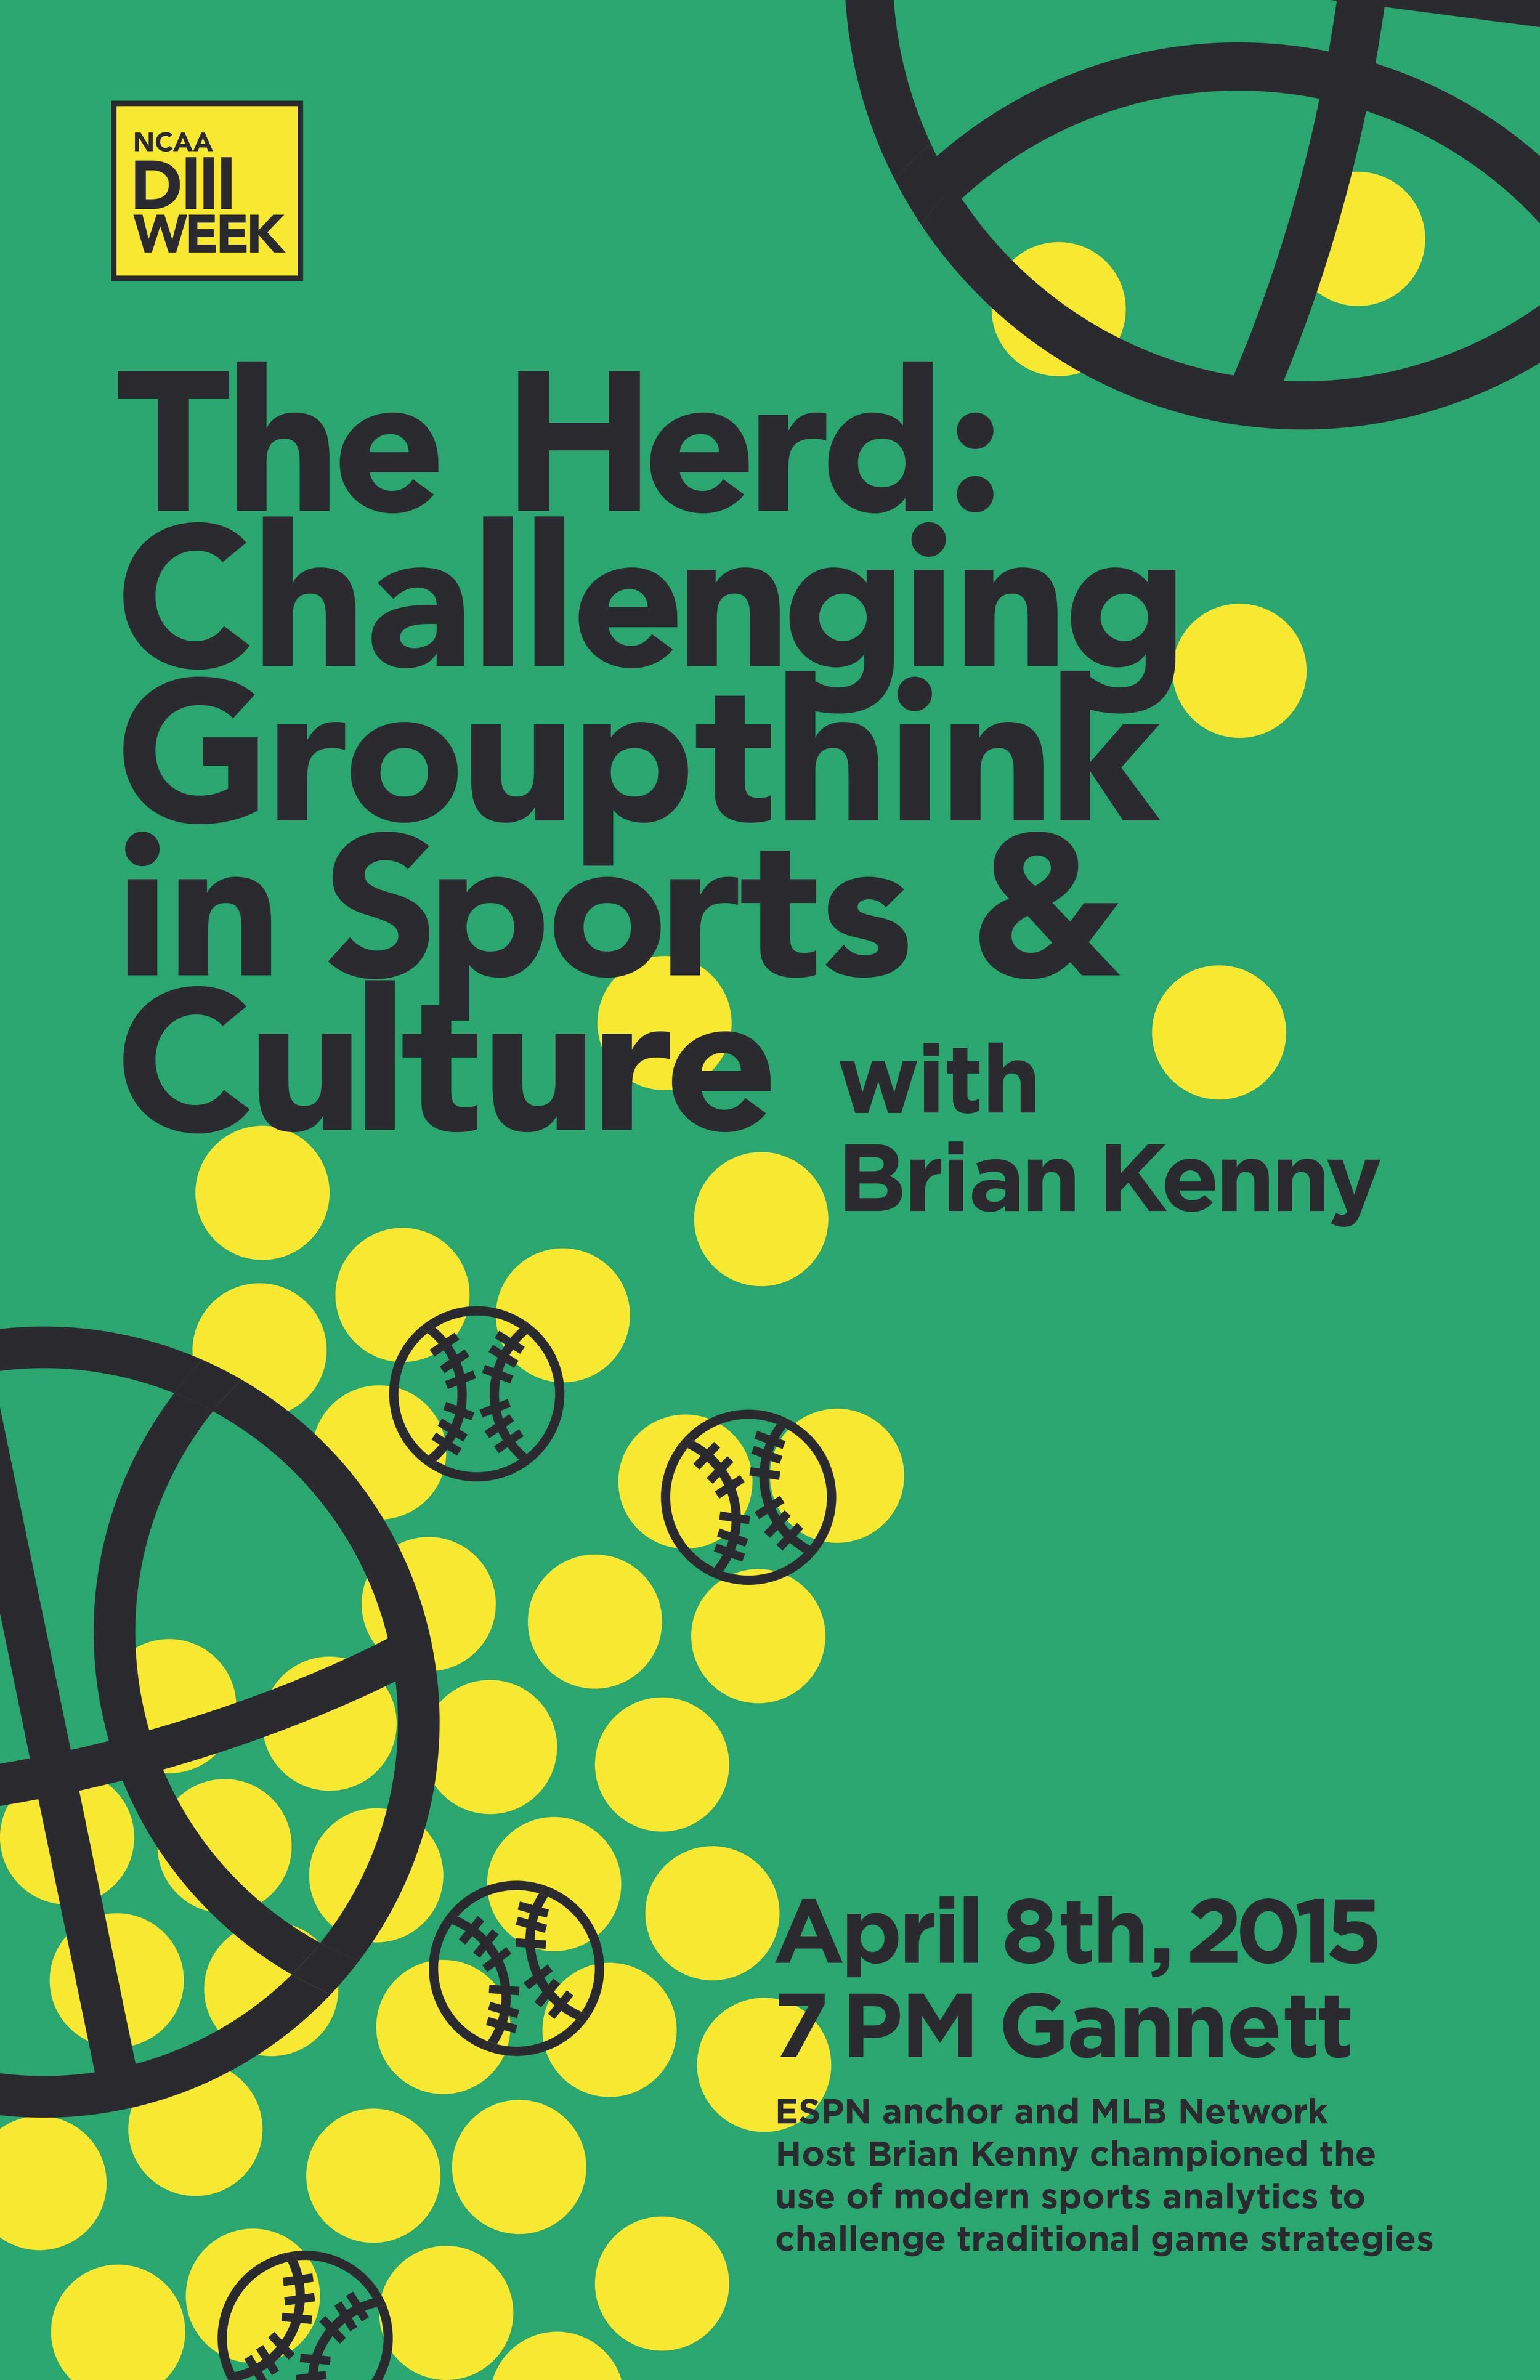 Brian Kenny lecture poster, by Aria Goodman '15